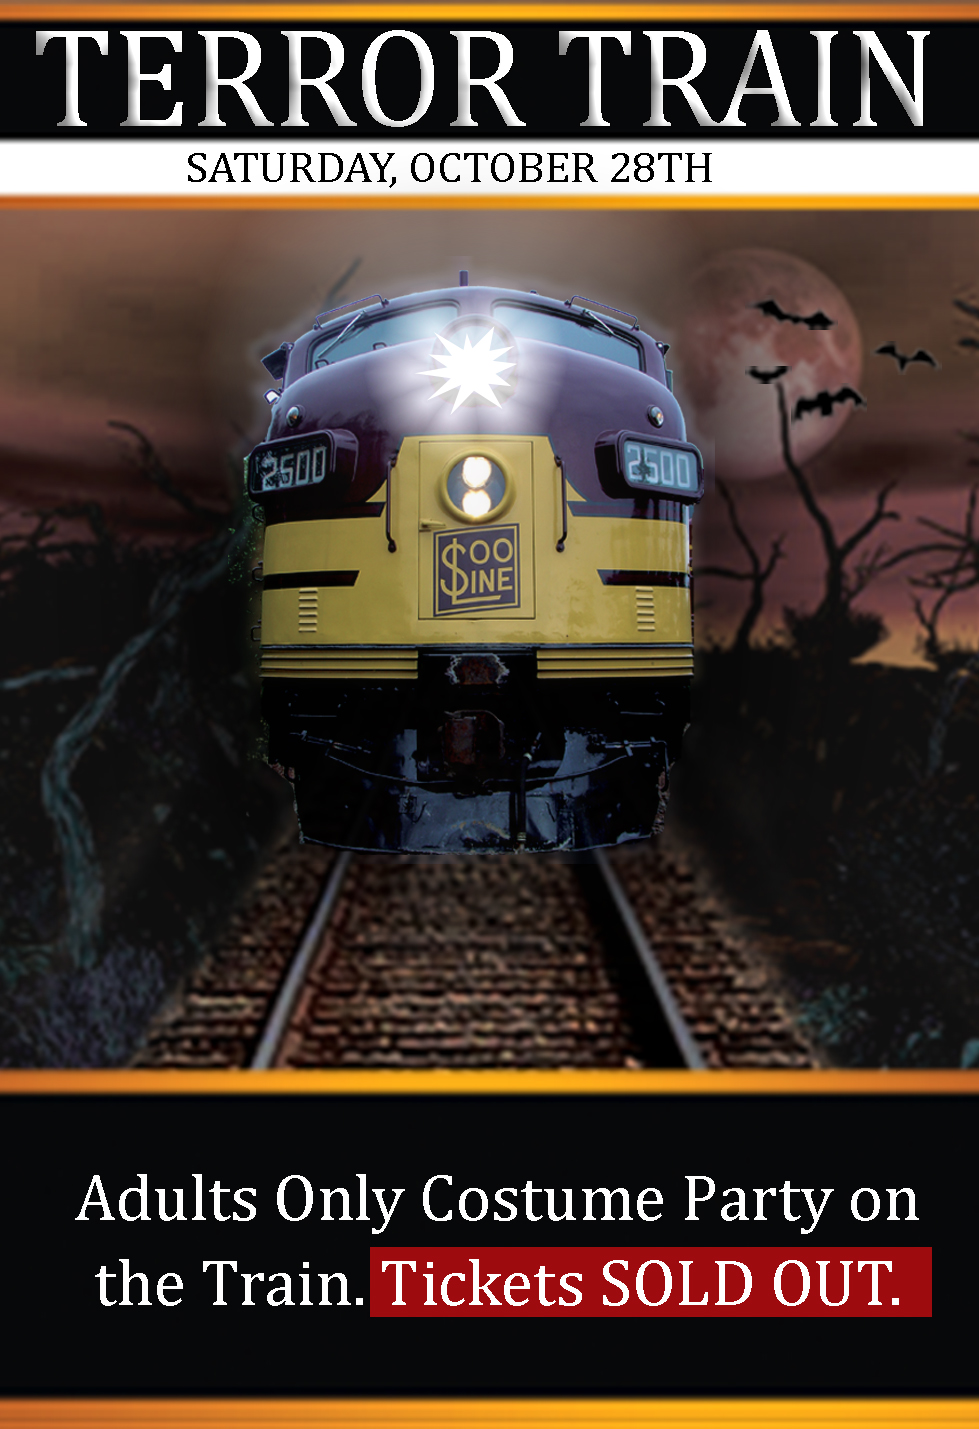 duluth terror train 2017 perfect duluth day